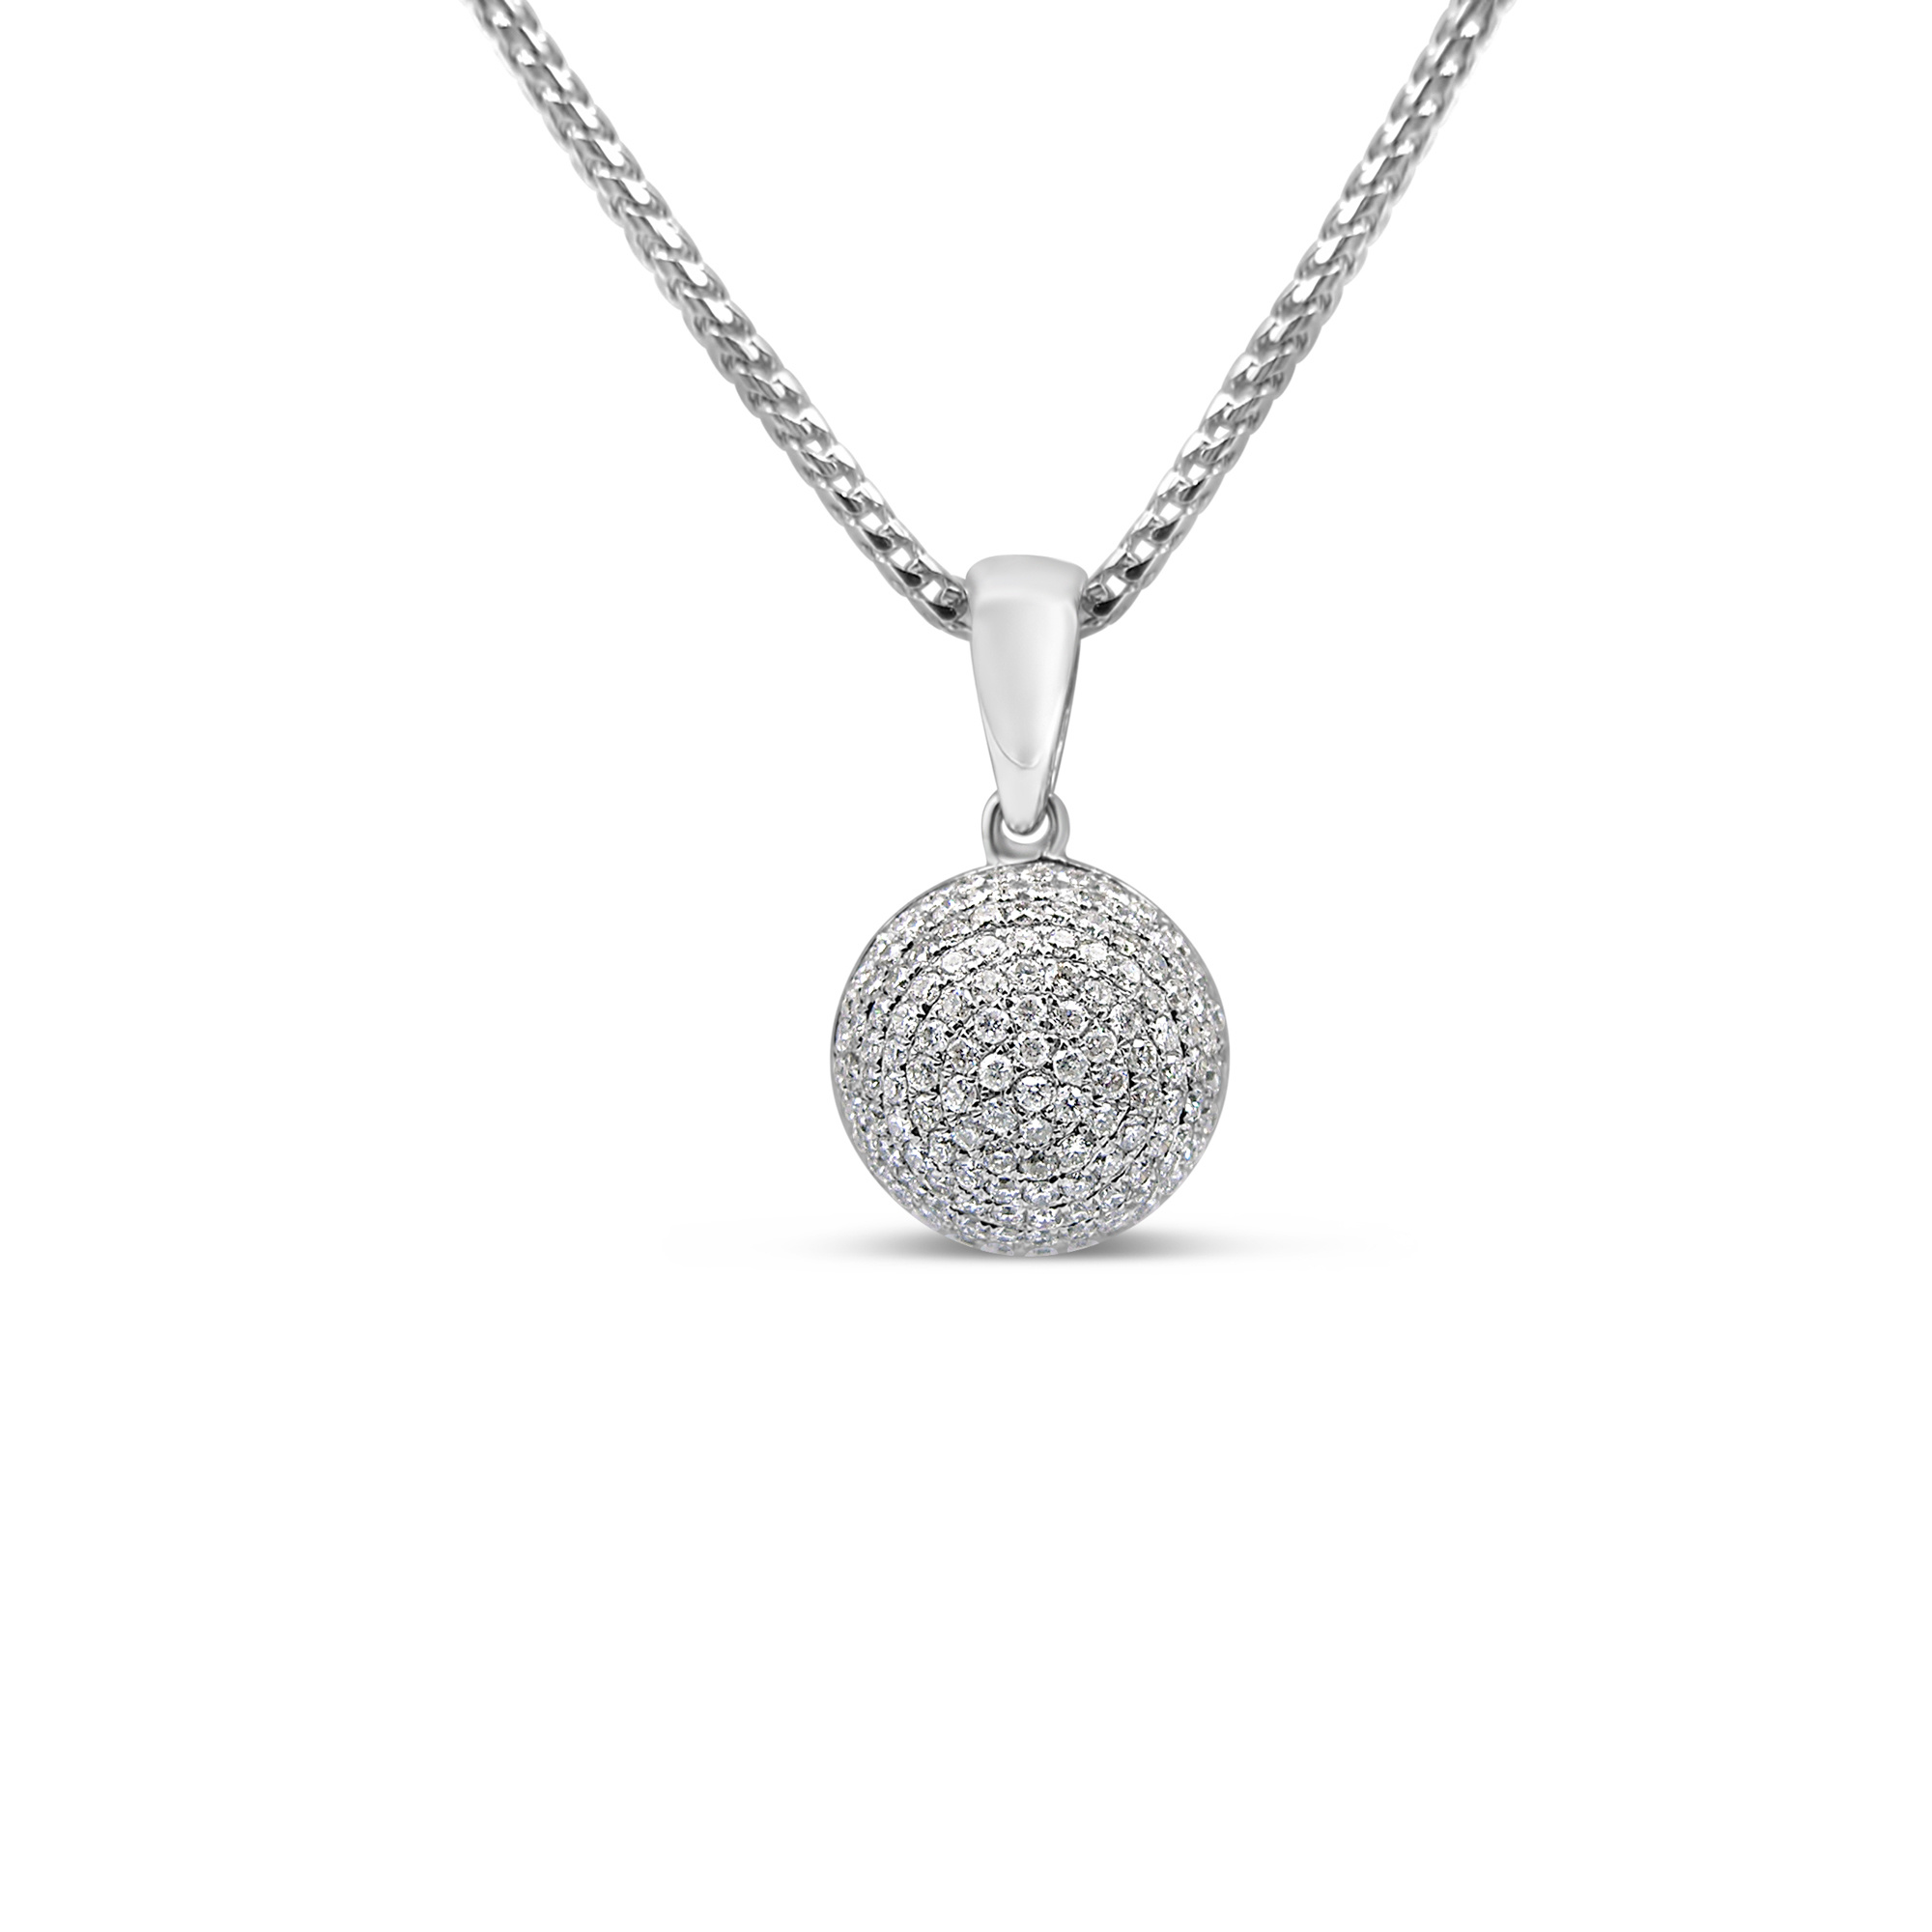 18kt white gold pendant with 0.55 ct diamonds